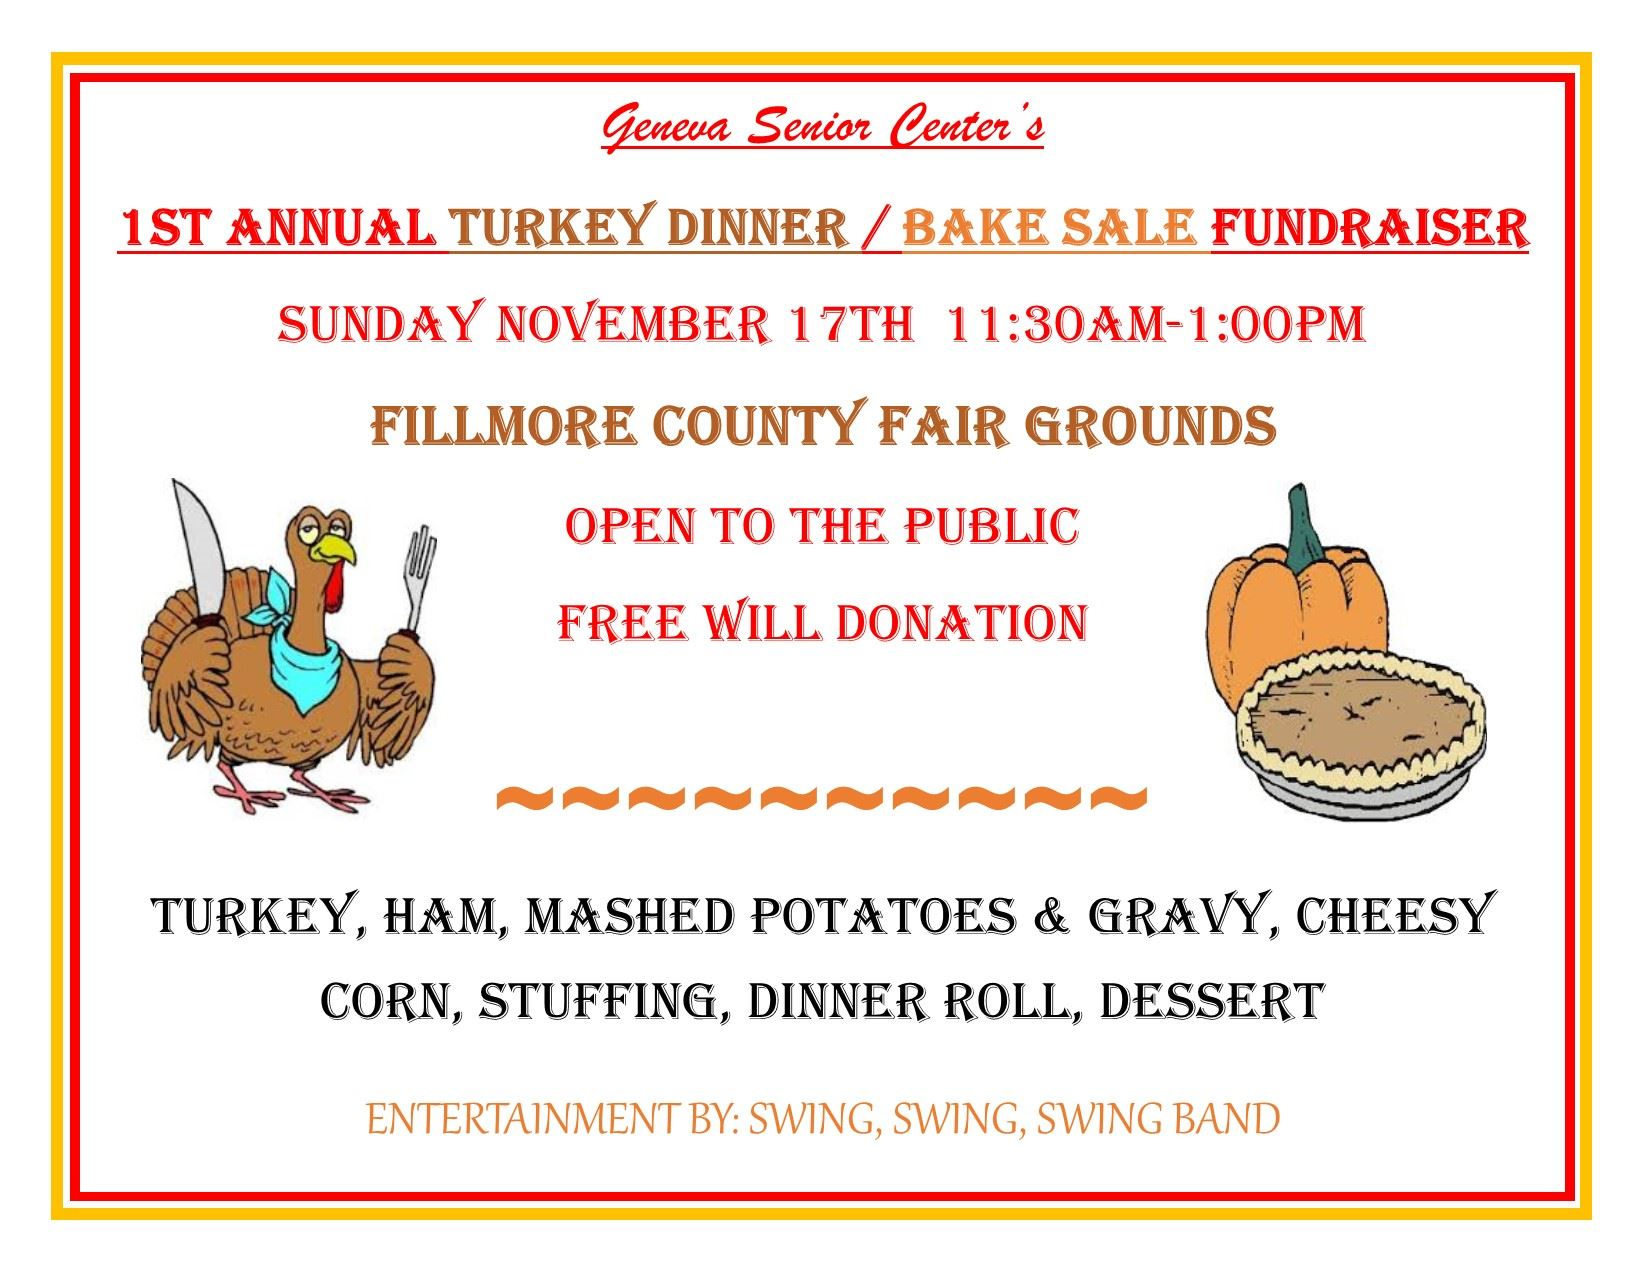 1st Annul Turkey Dinner flyer